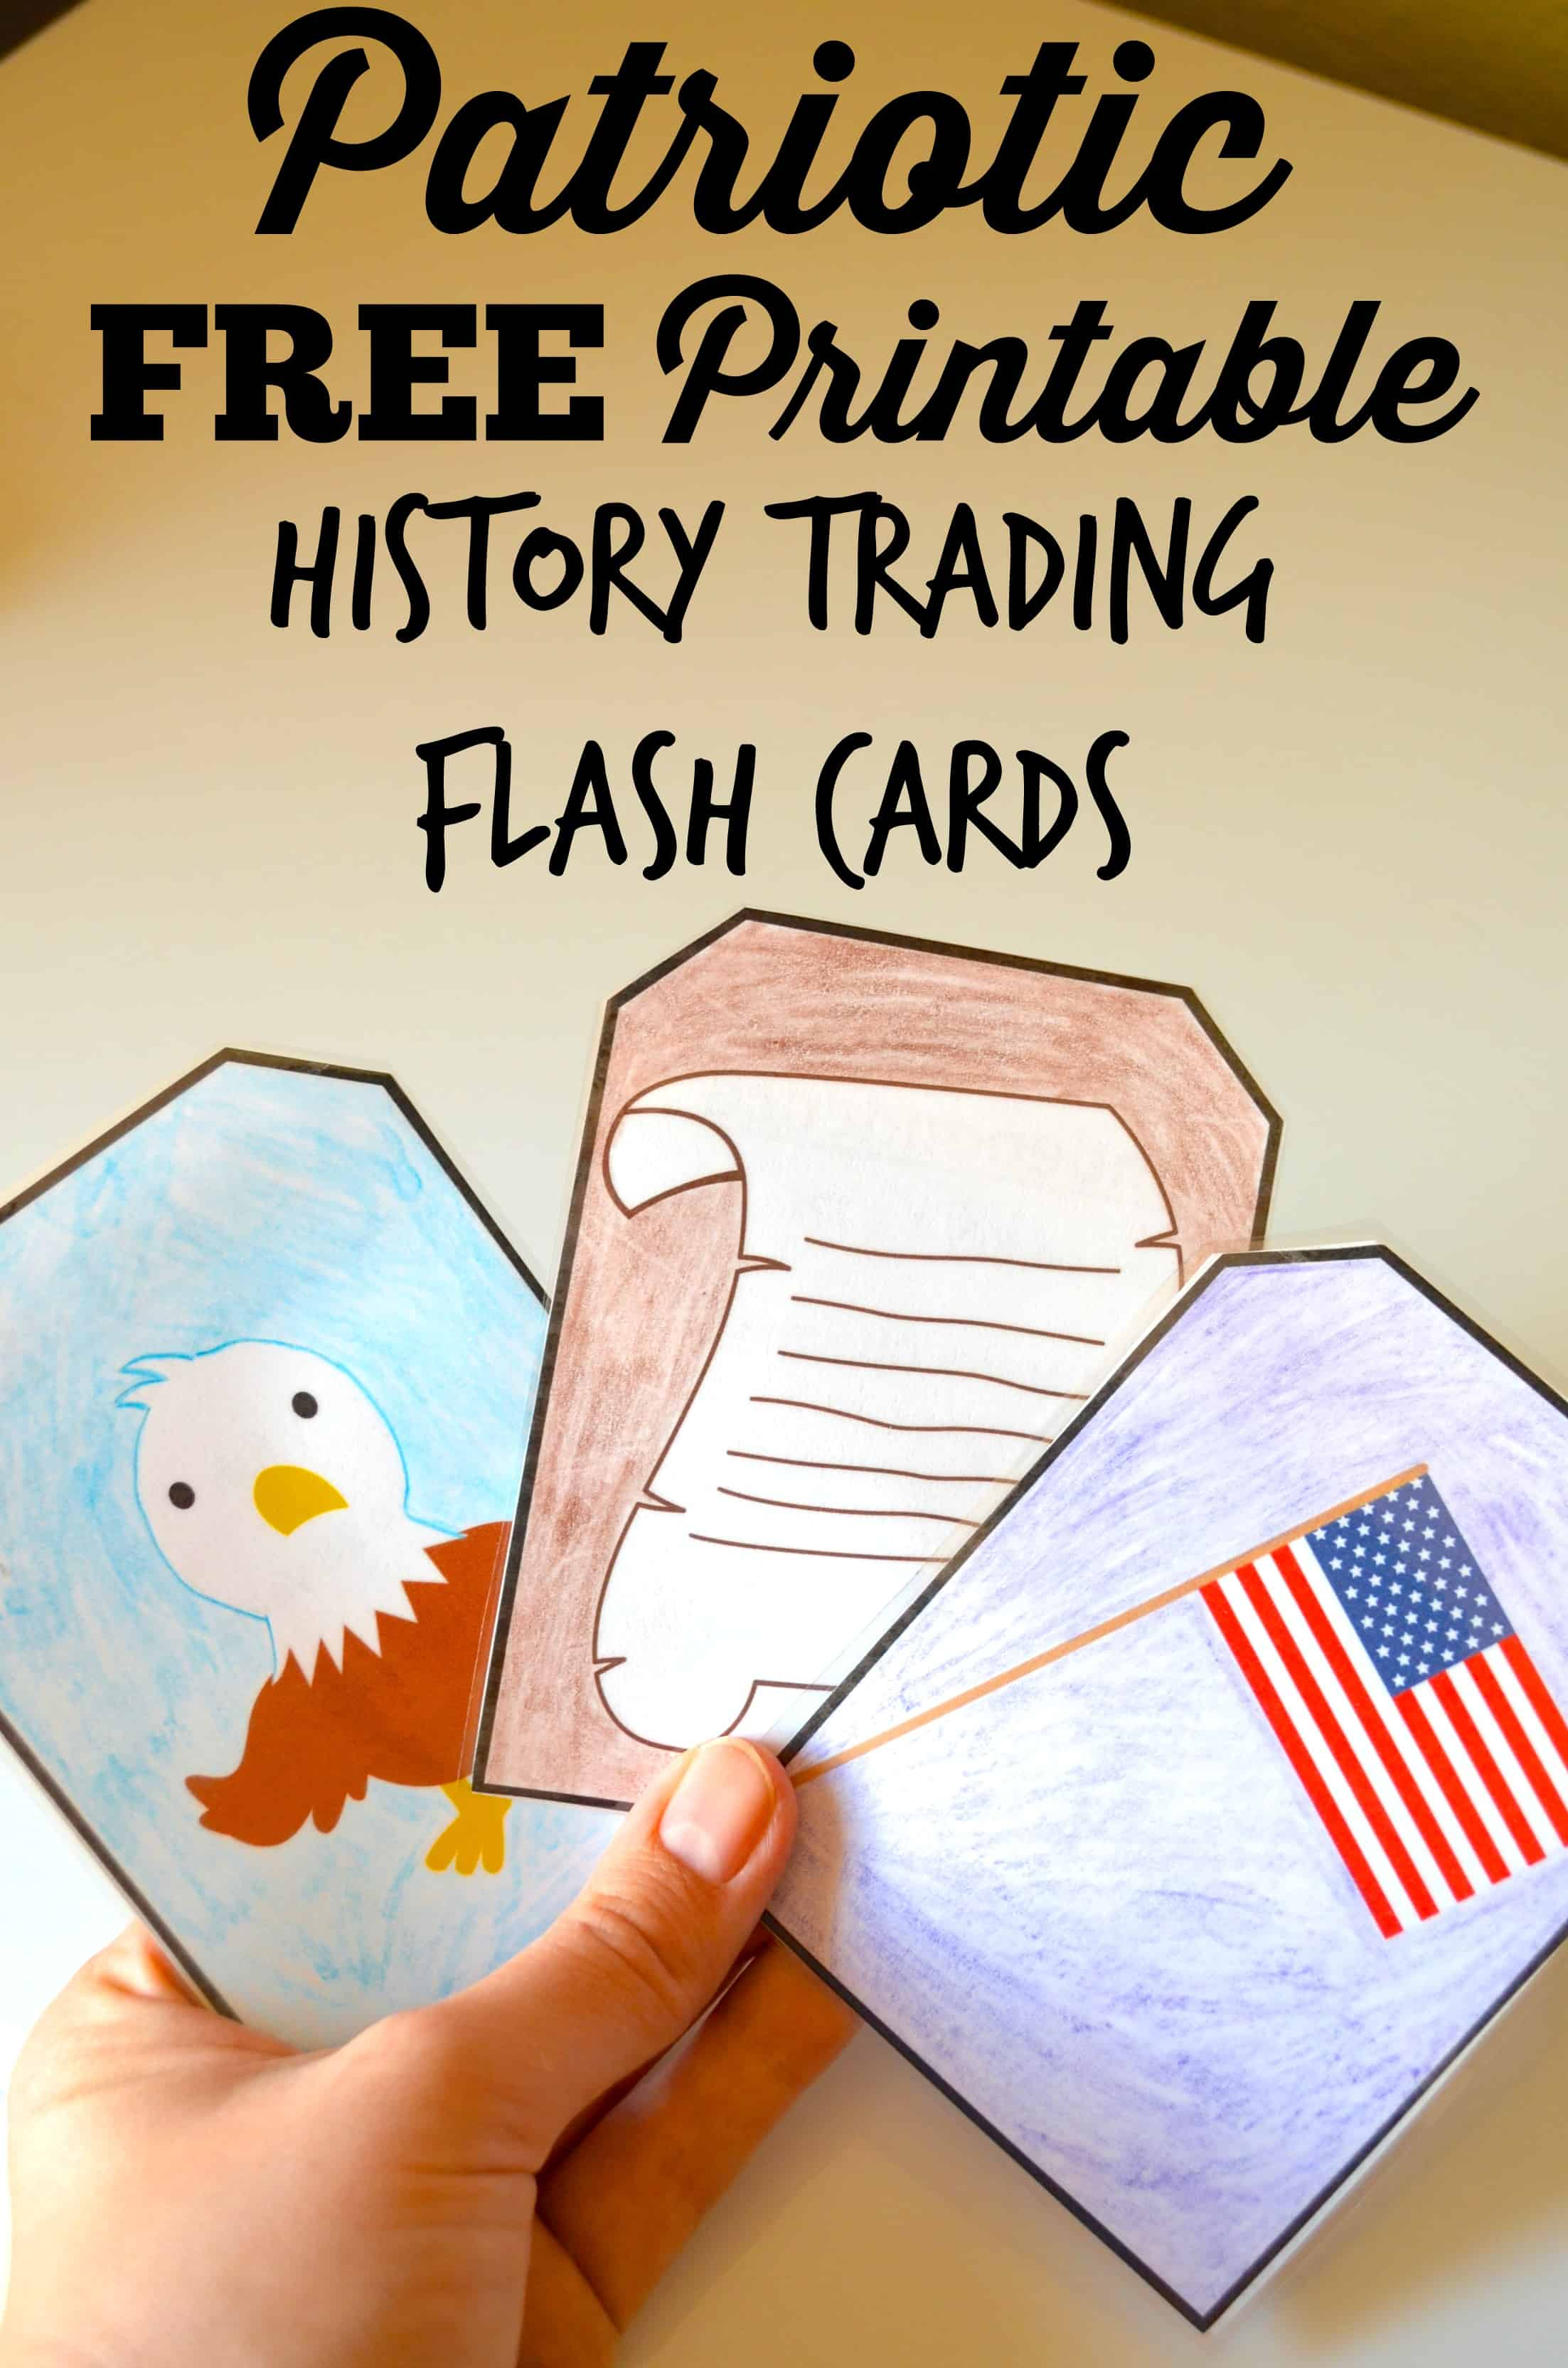 Free Patriotic Printable History Trading Flashcards